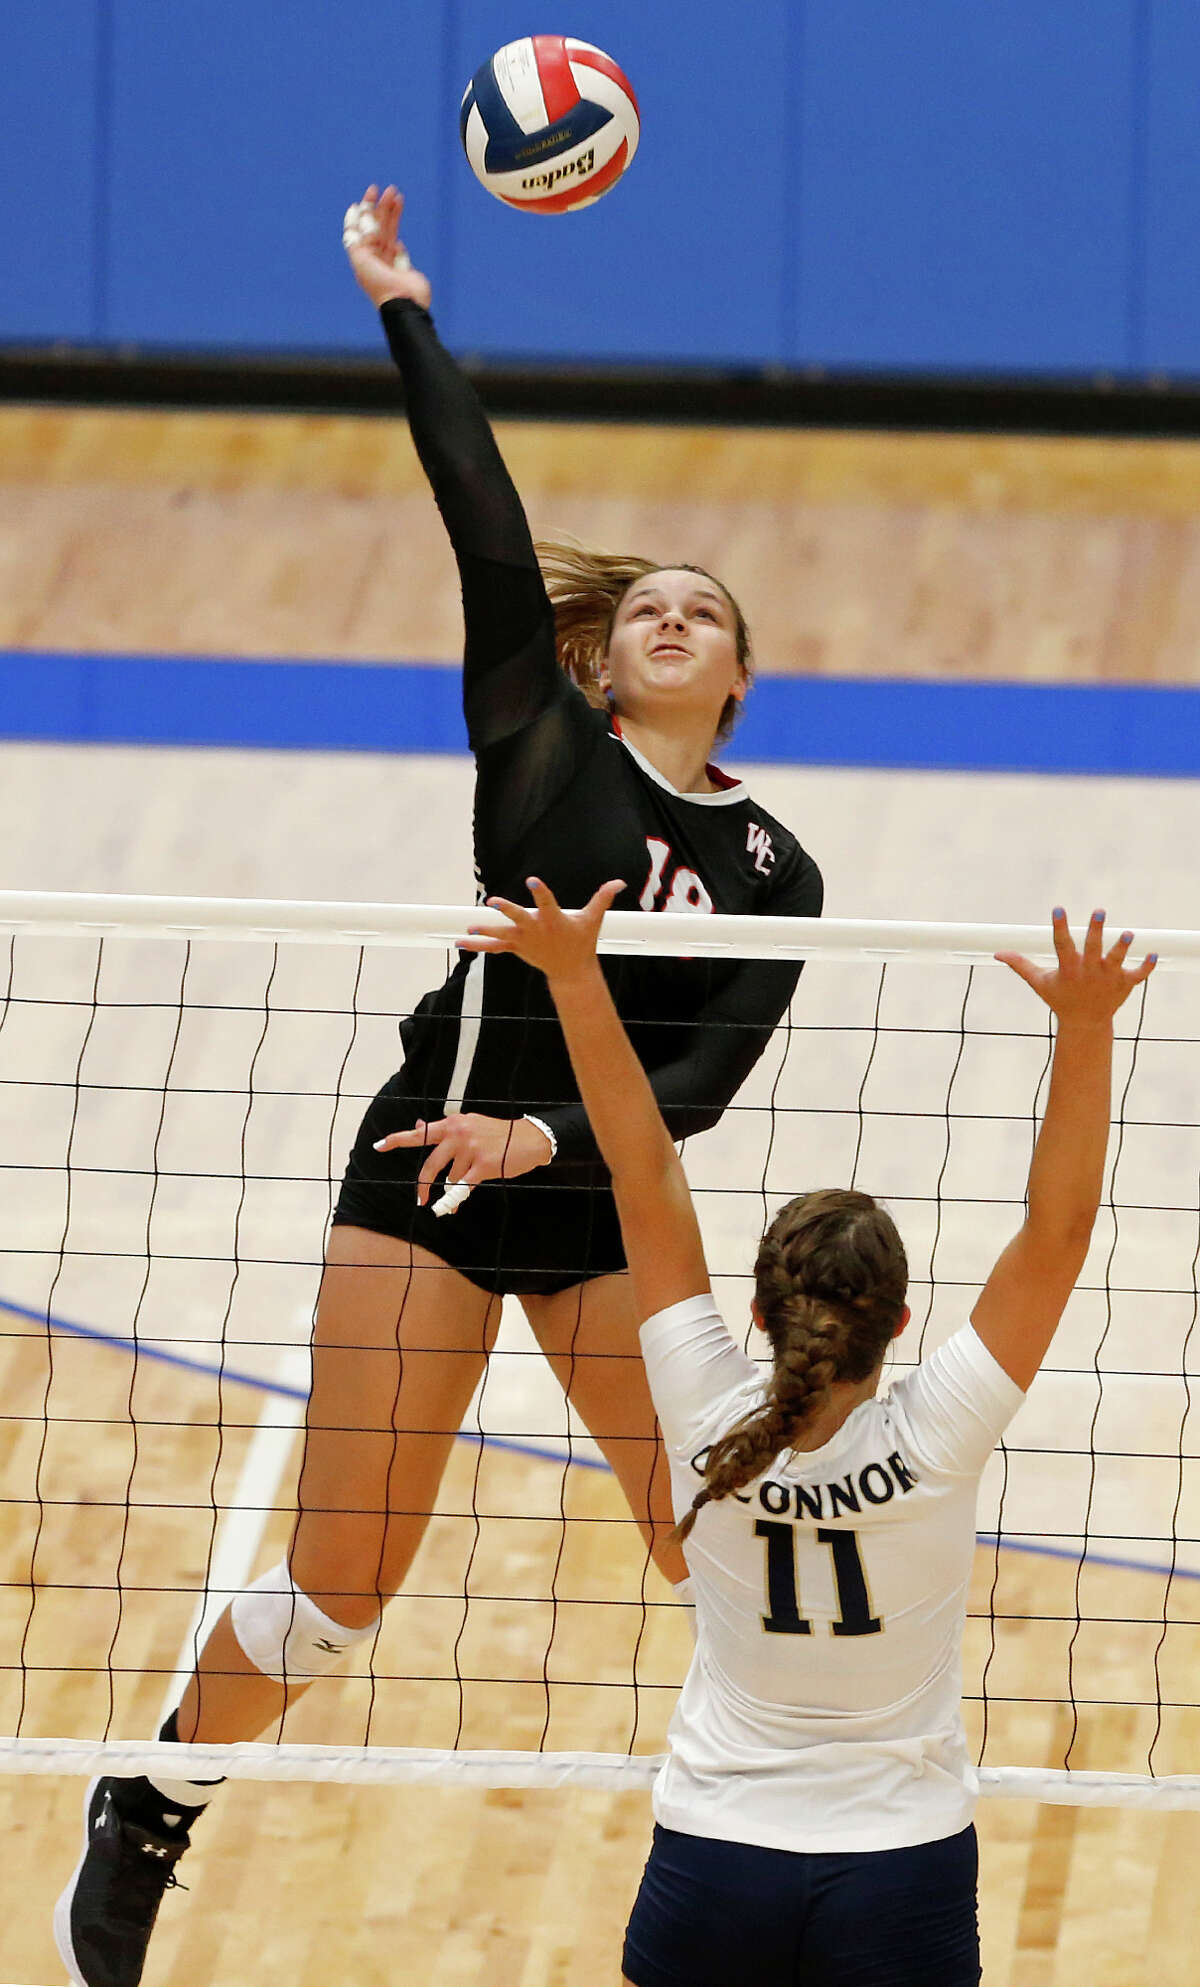 Caroline Meuth: Churchill volleyball: 21 kills, 25 assists, 11 digs, 1 ace, 1 blocks in five-set win over New Braunfels Canyon